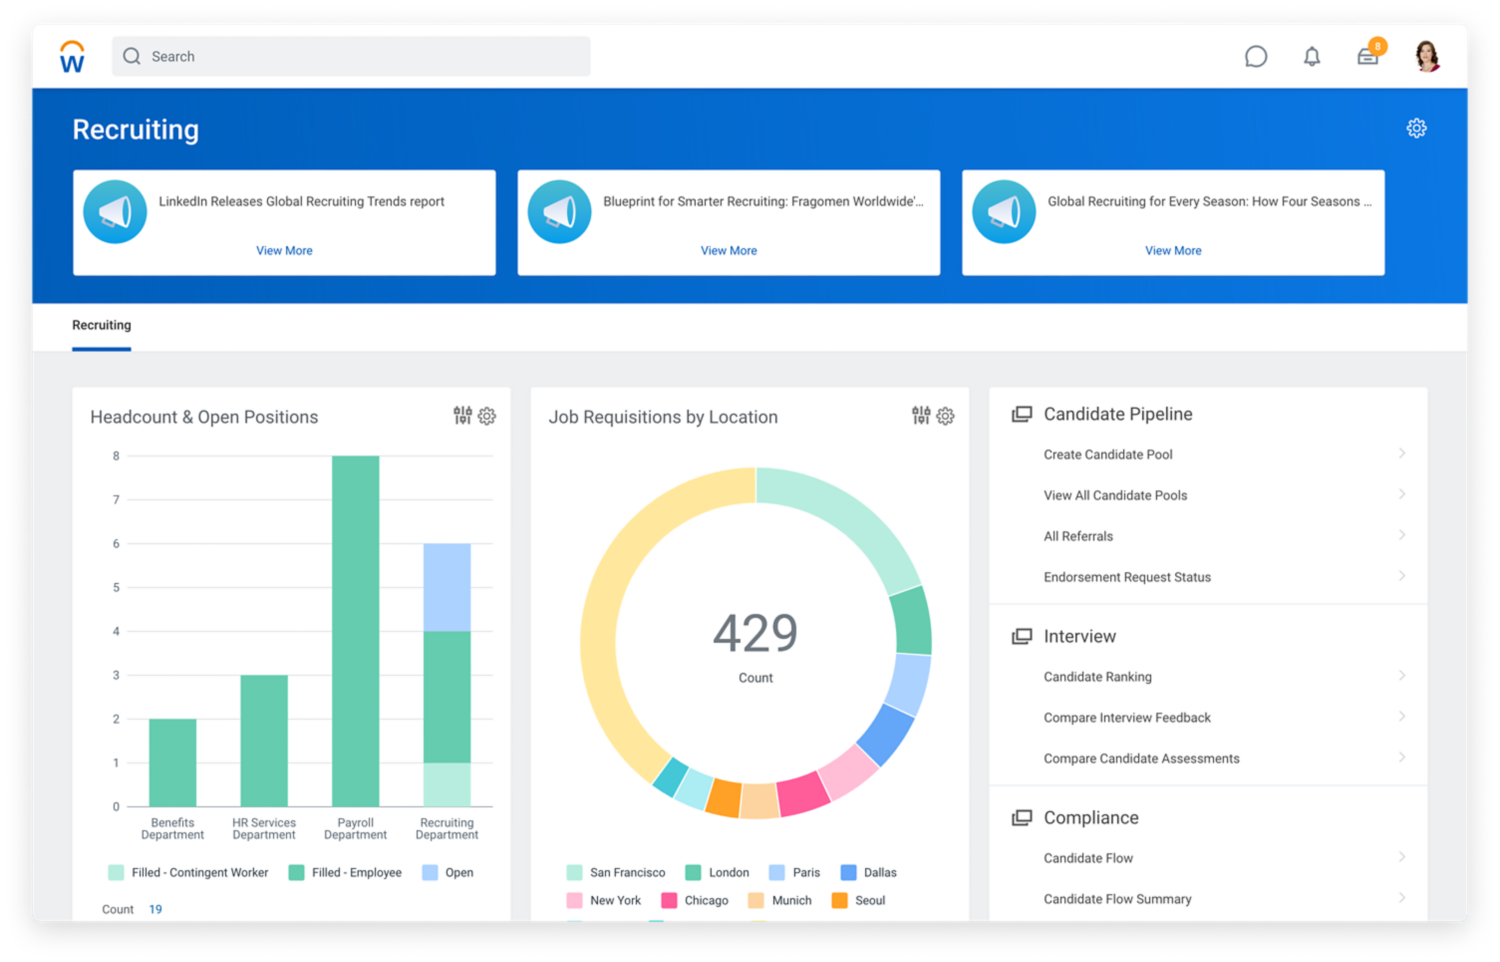 Talent acquisition dashboard showing graphs for headcount, open positions and job requisitions by location.